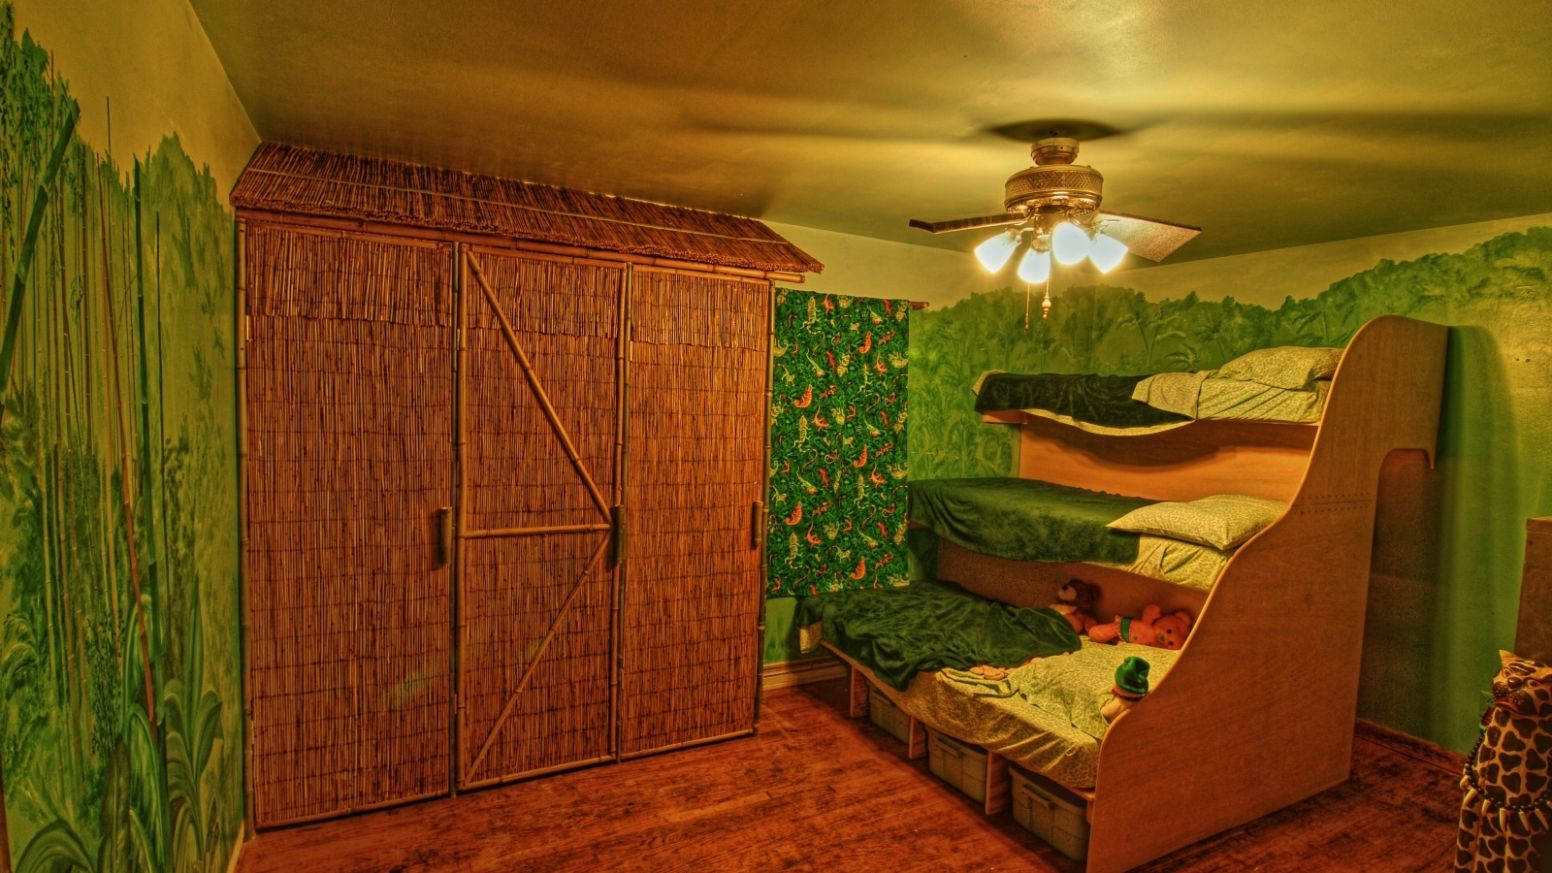 Free download Baby Room Ideas Jungle Theme Wallpaper [10x10 ..